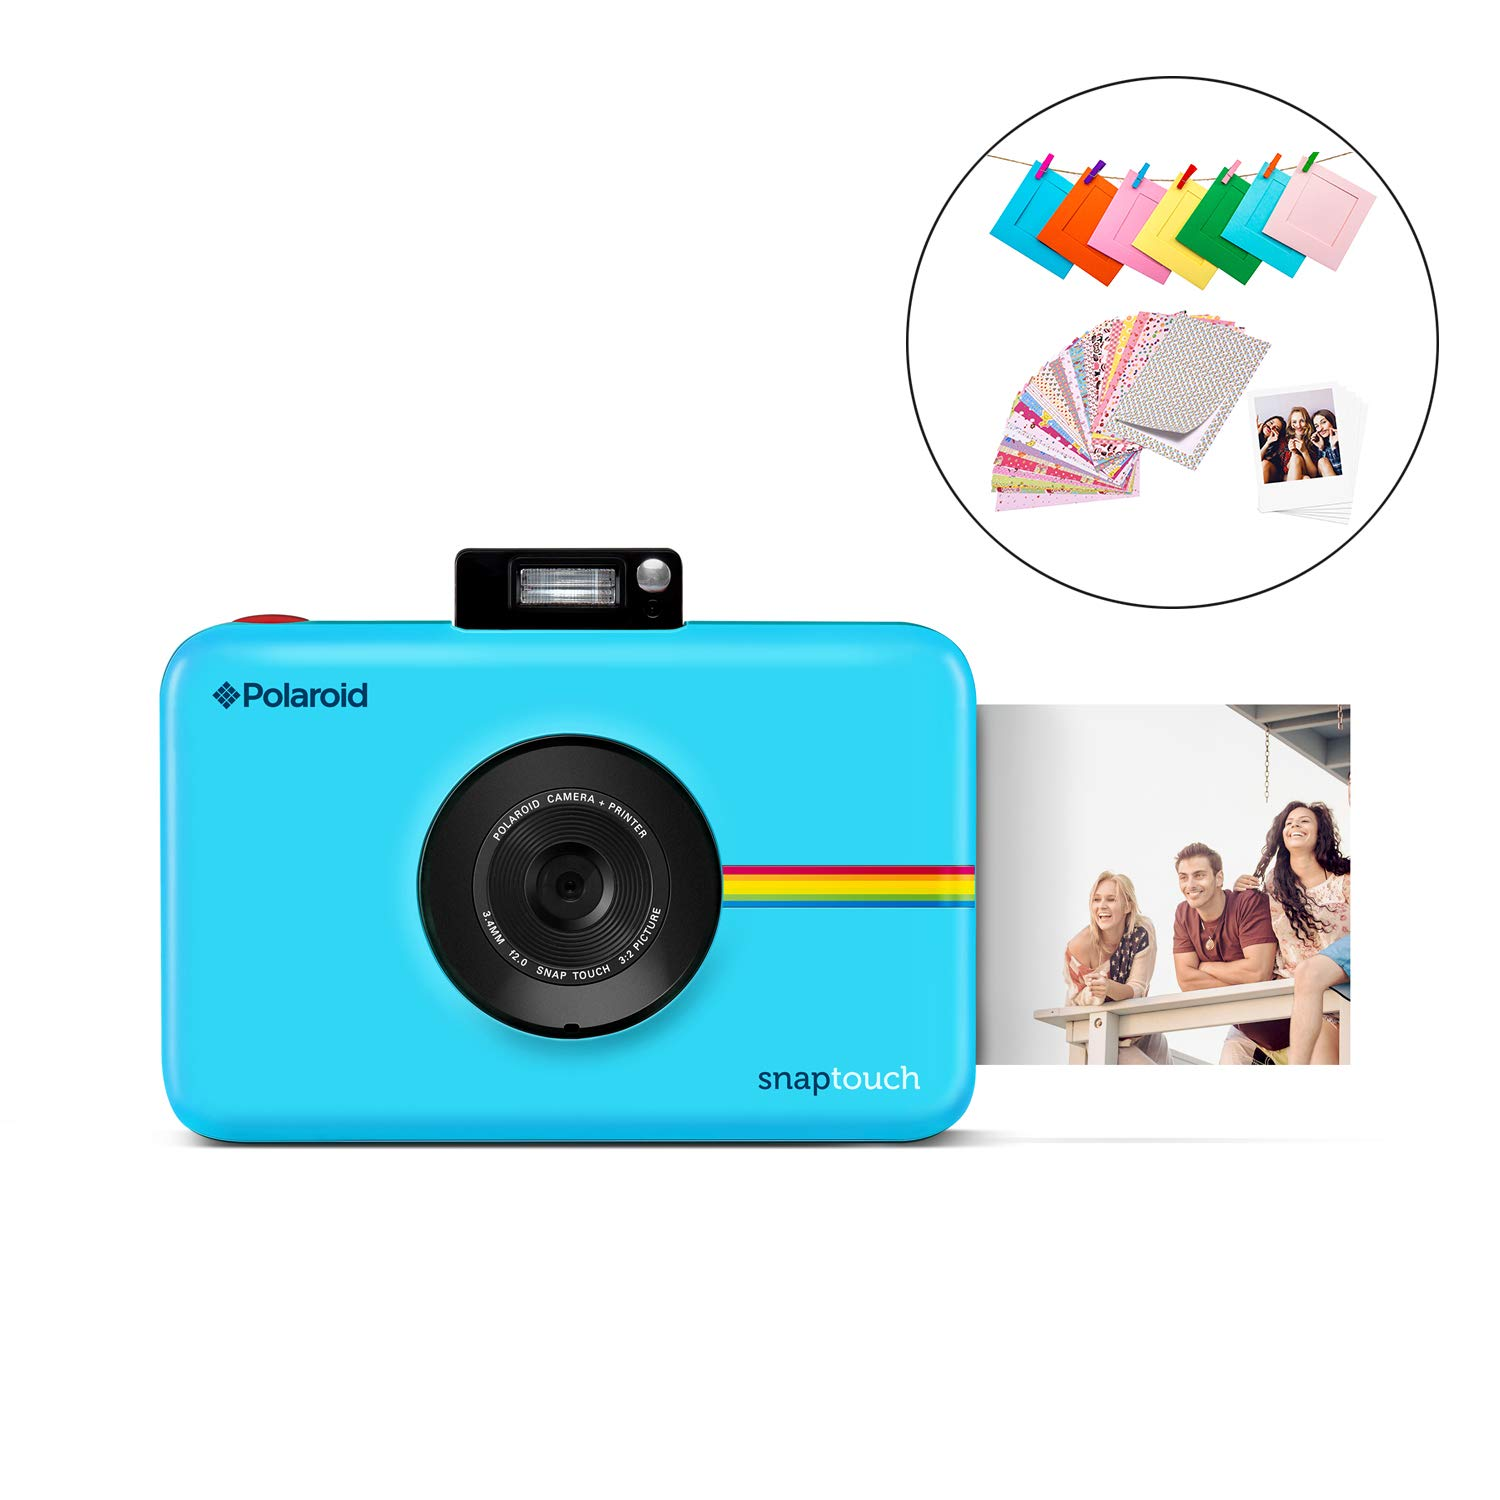 Polaroid SNAP Touch 2.0 - 13MP Portable Instant Print Digital Photo Camera w/Built-In Touchscreen Display, Blue by Polaroid